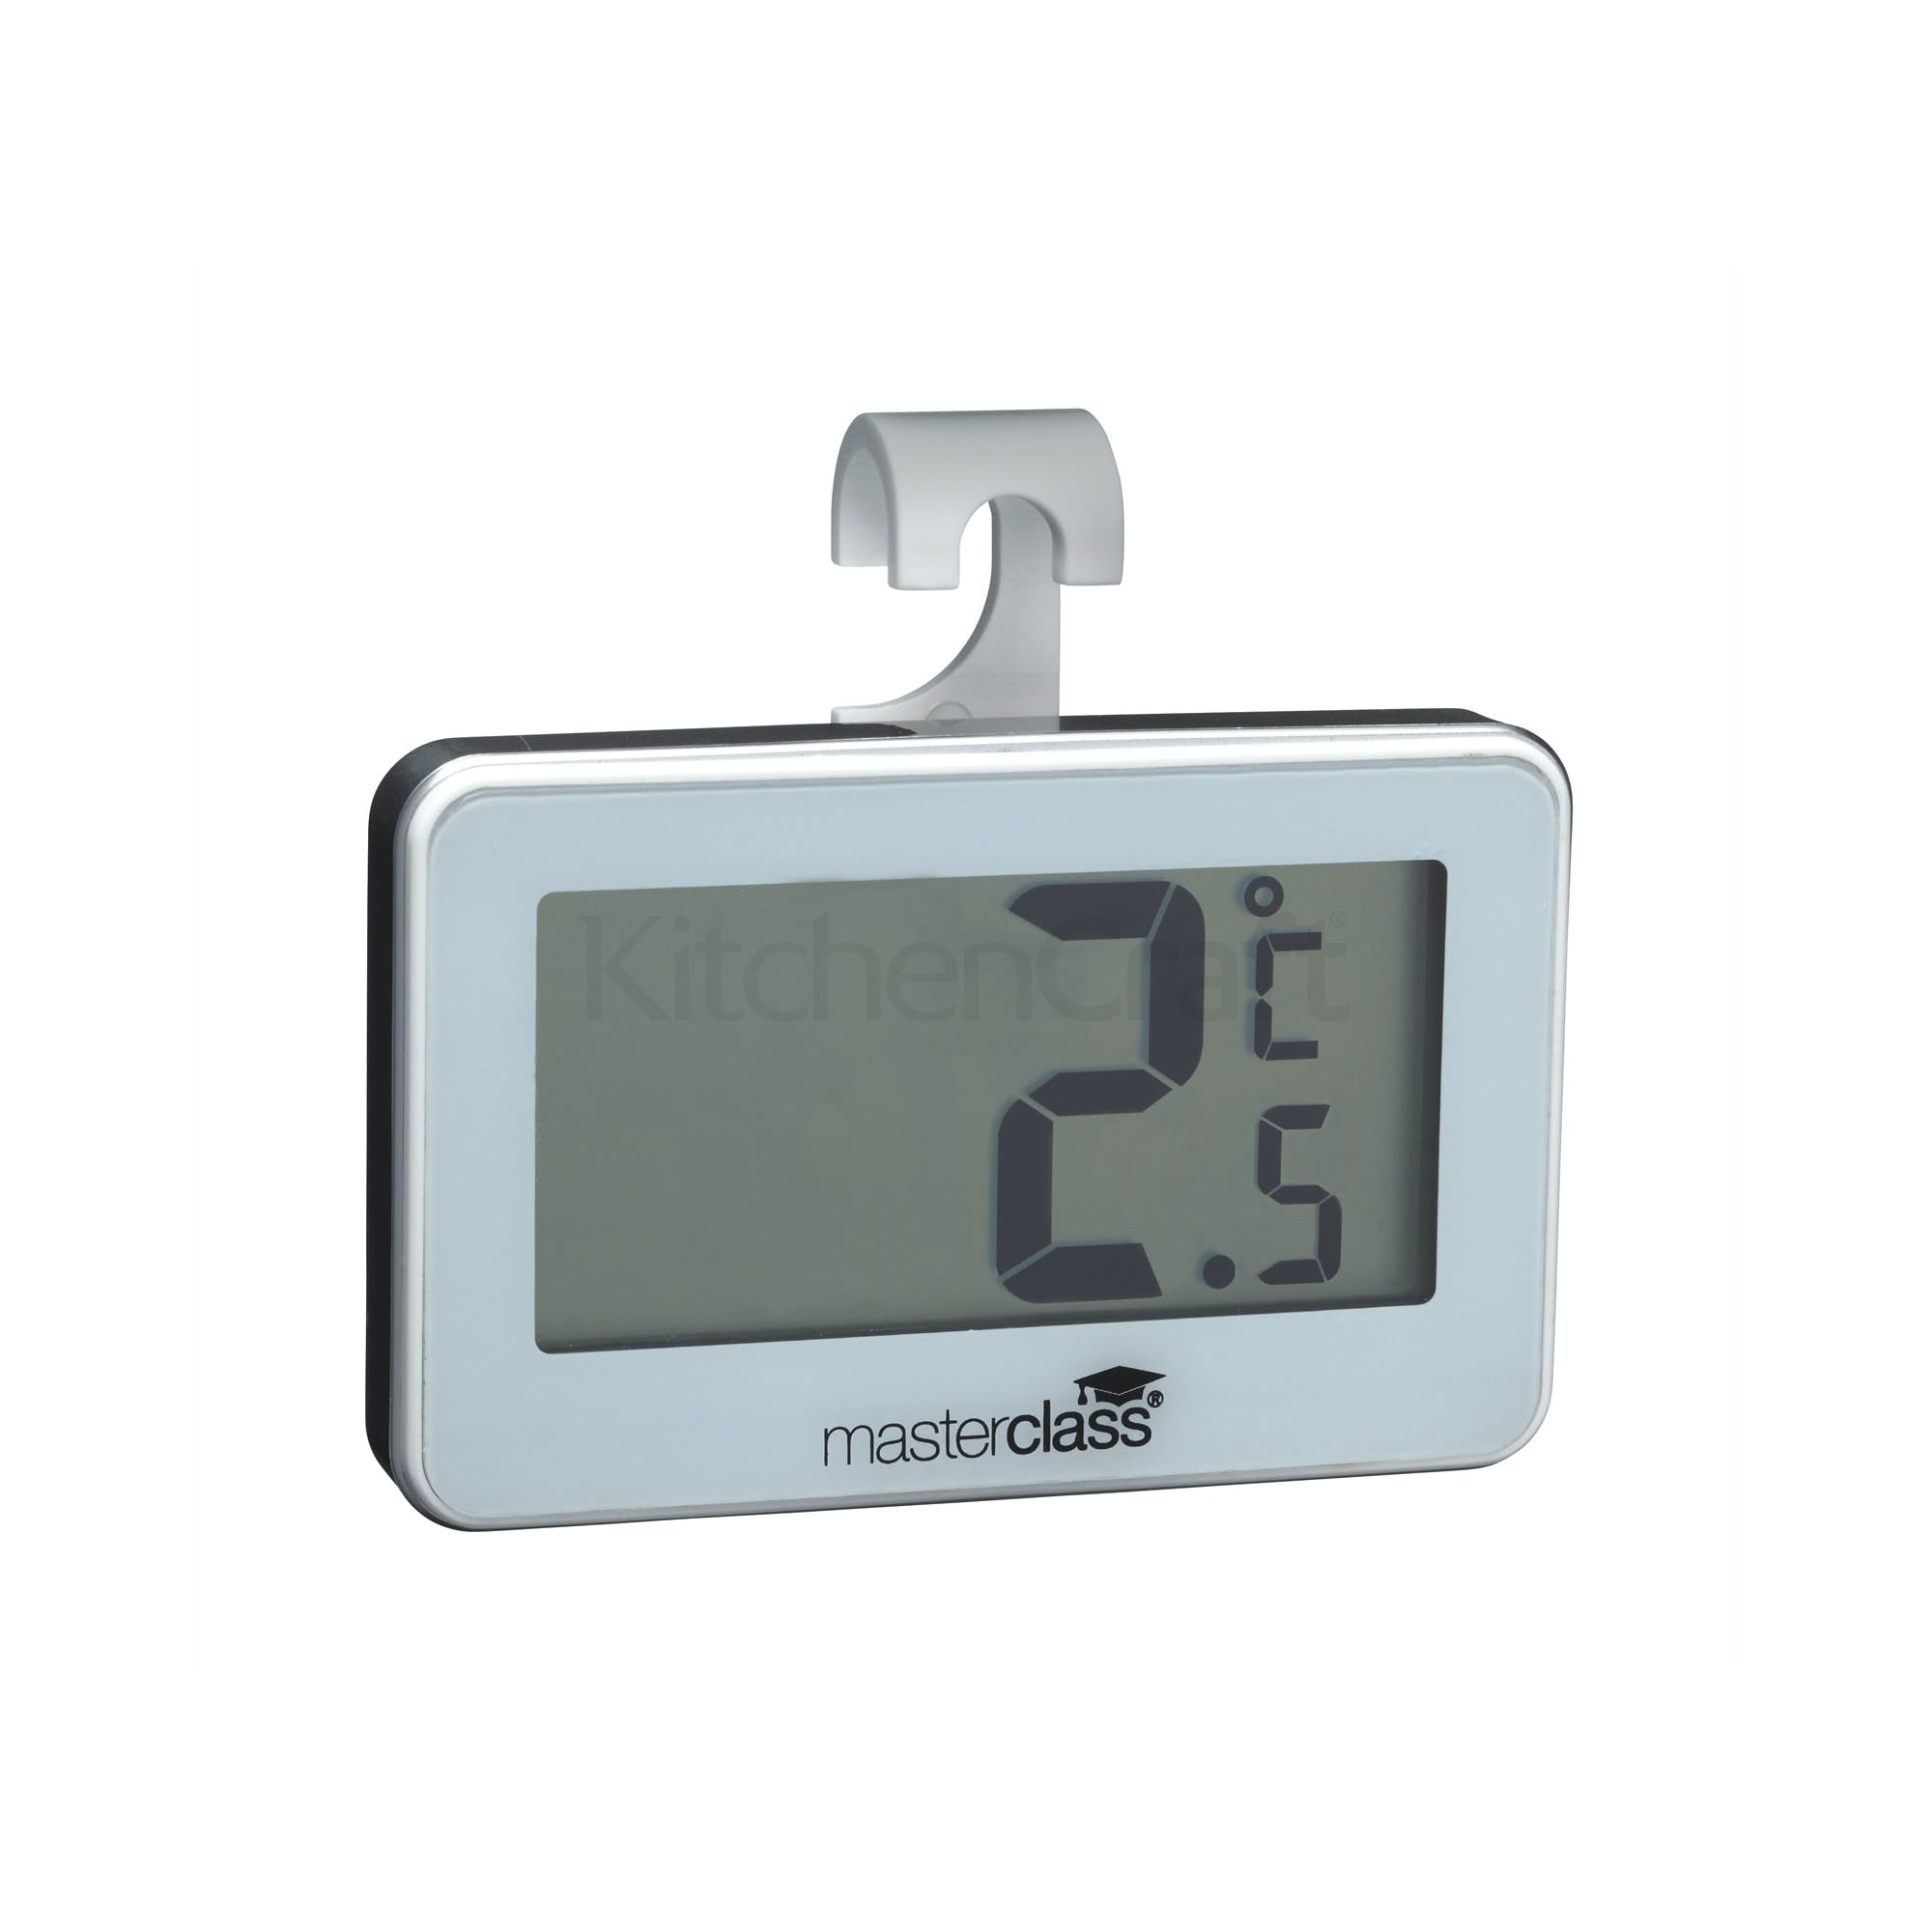 Masterclass Digital Fridge Thermometer Thermometers Timers